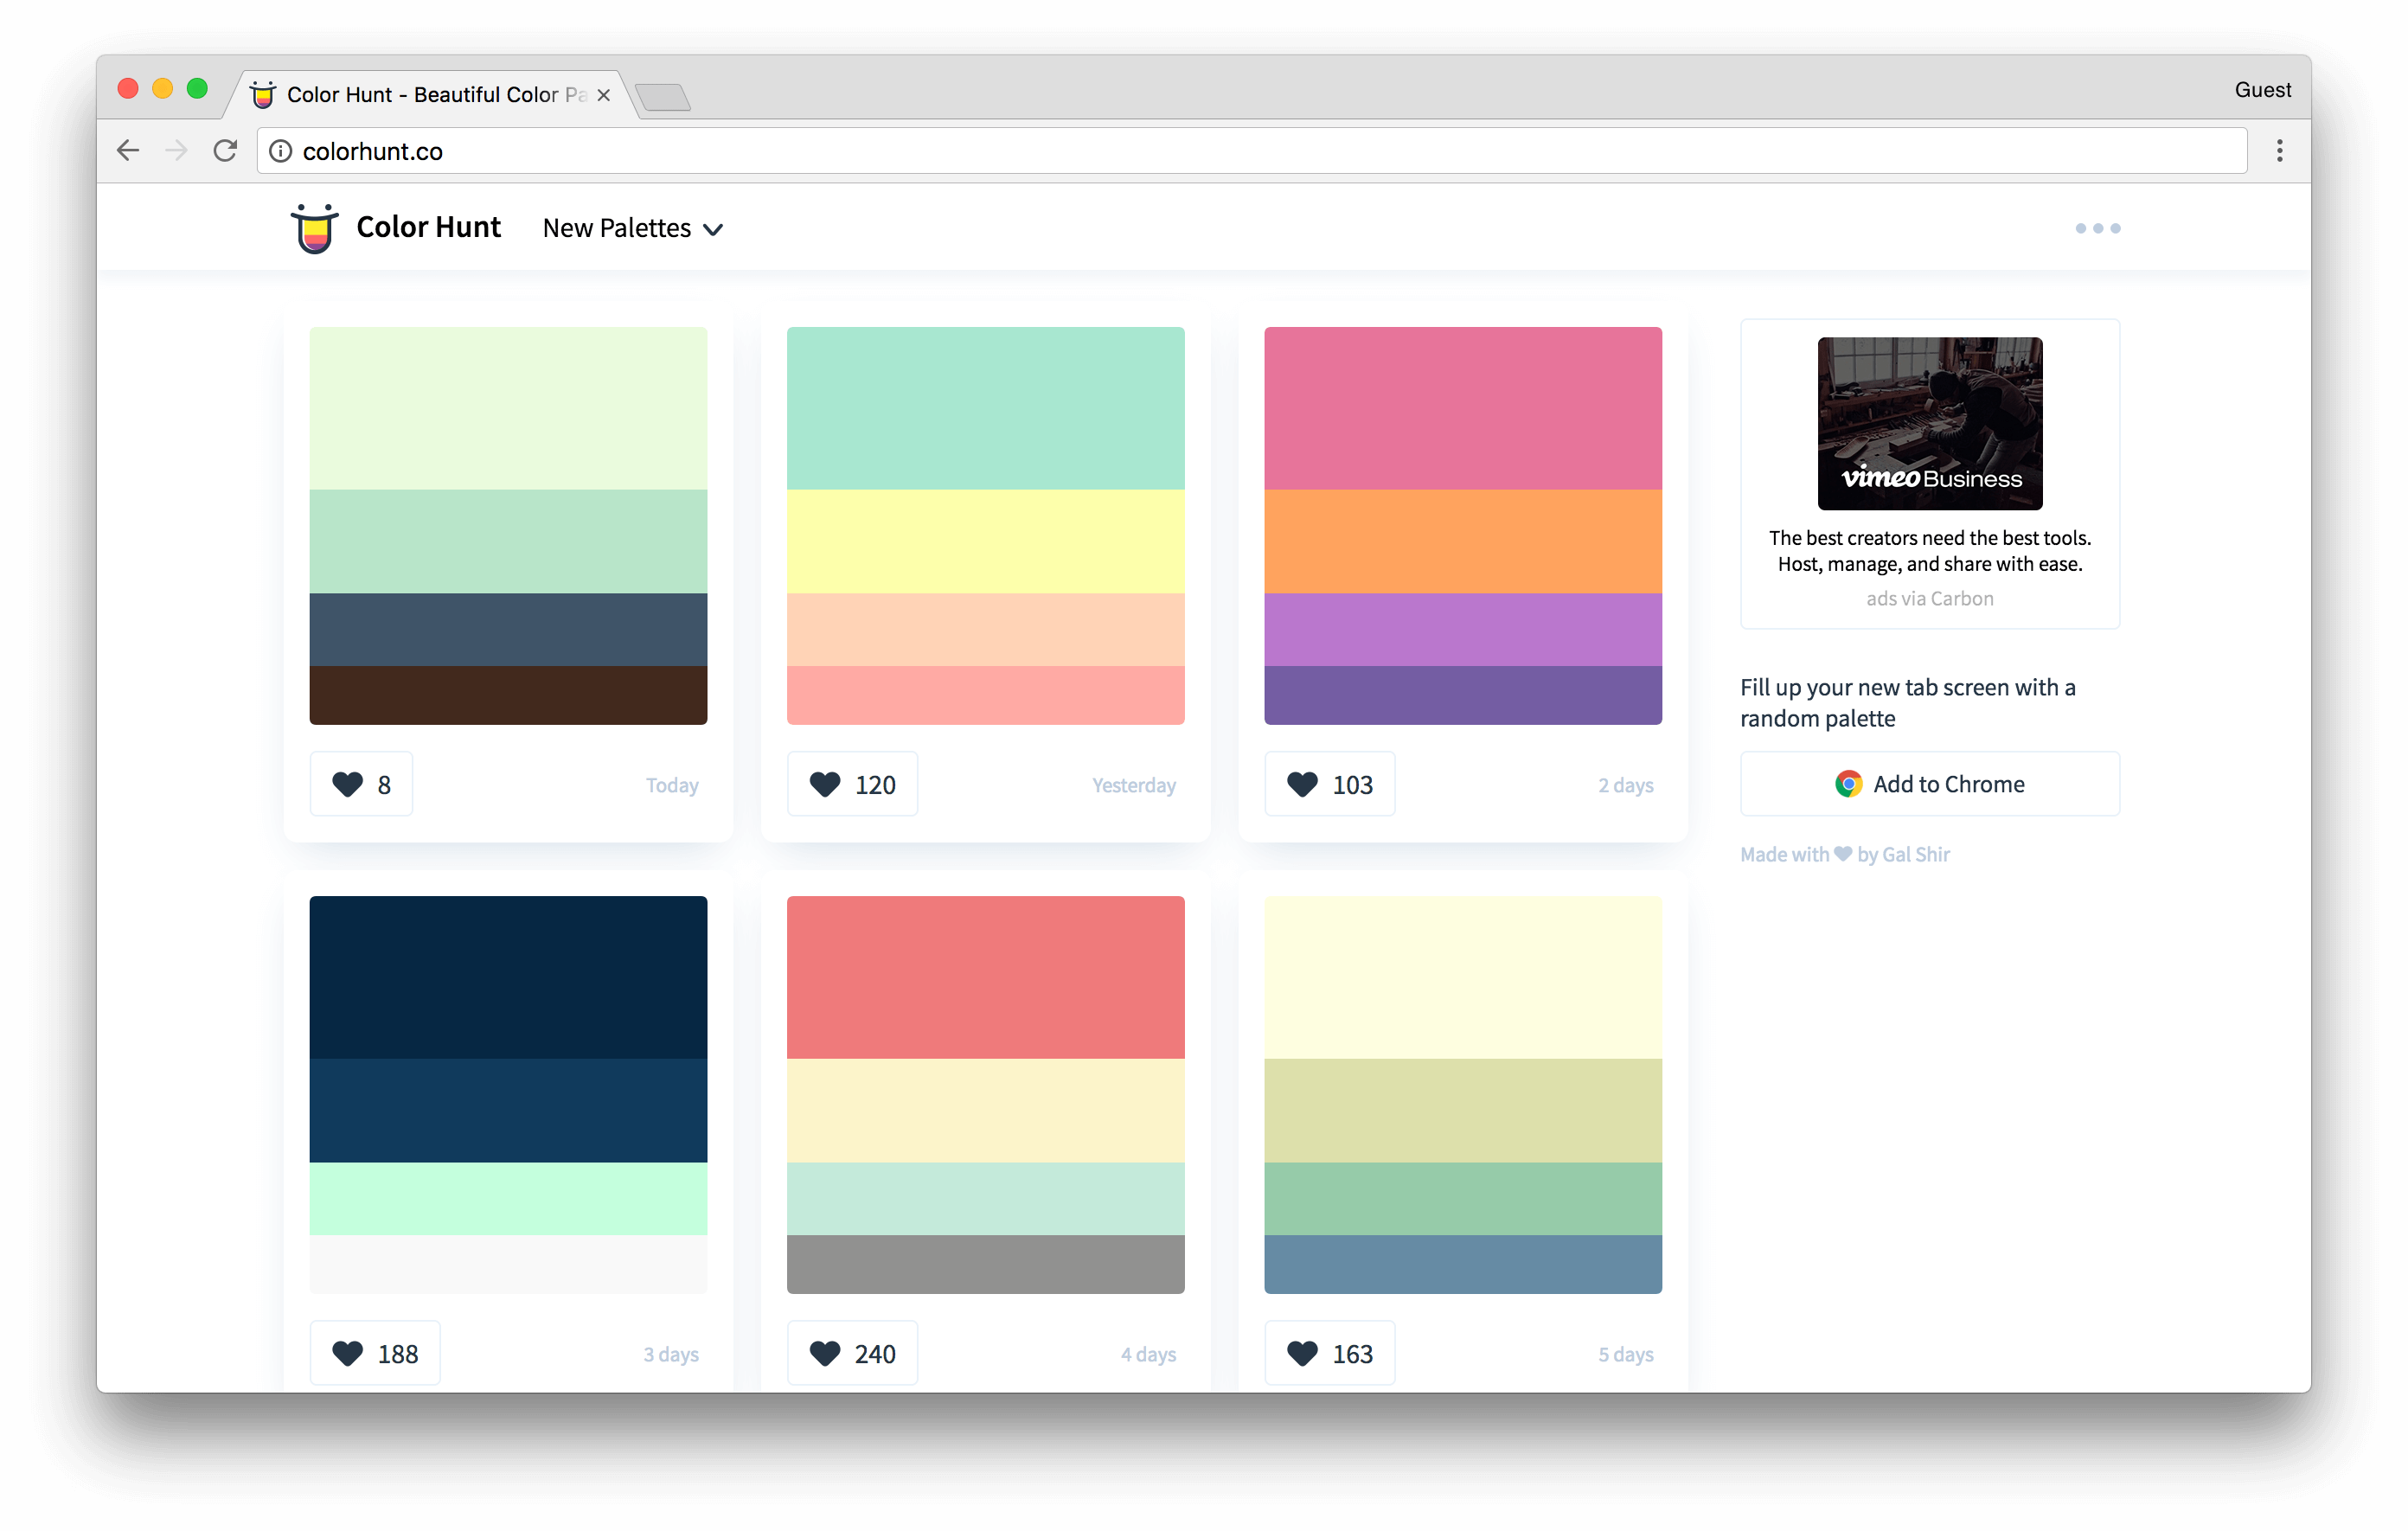 colorhunt.co